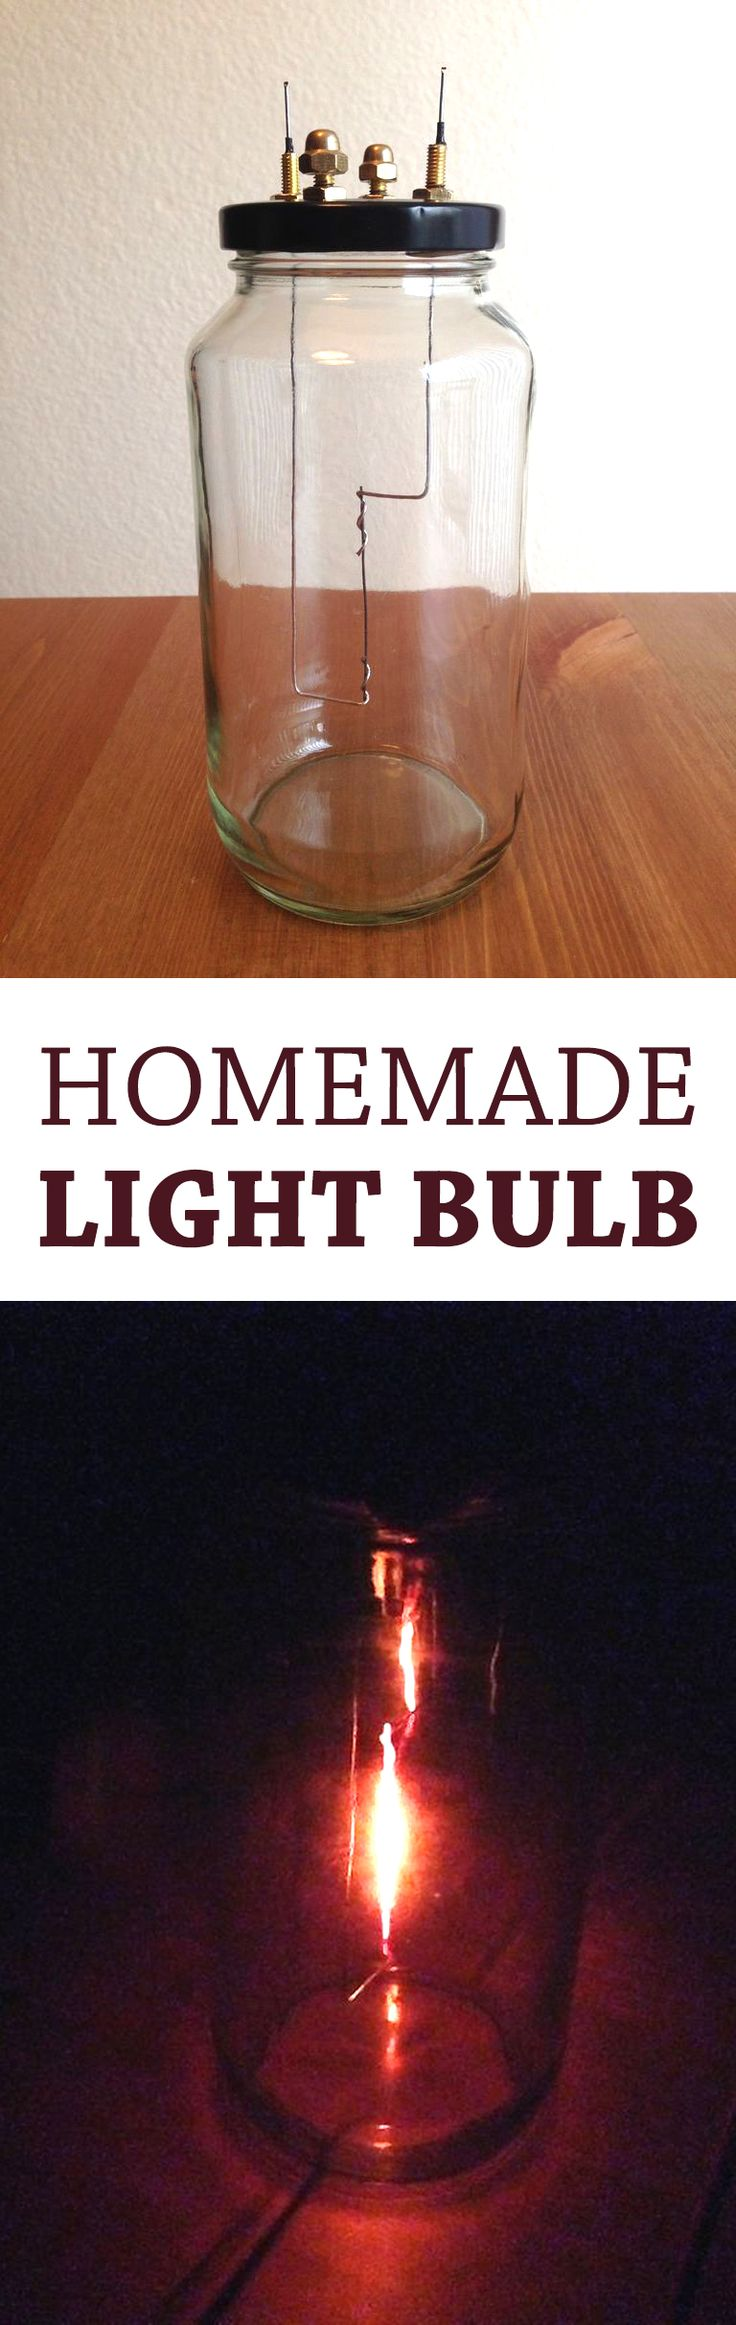 This lightbulb is made entirely out of simple, mostly household materials requiring very little in special equipment.